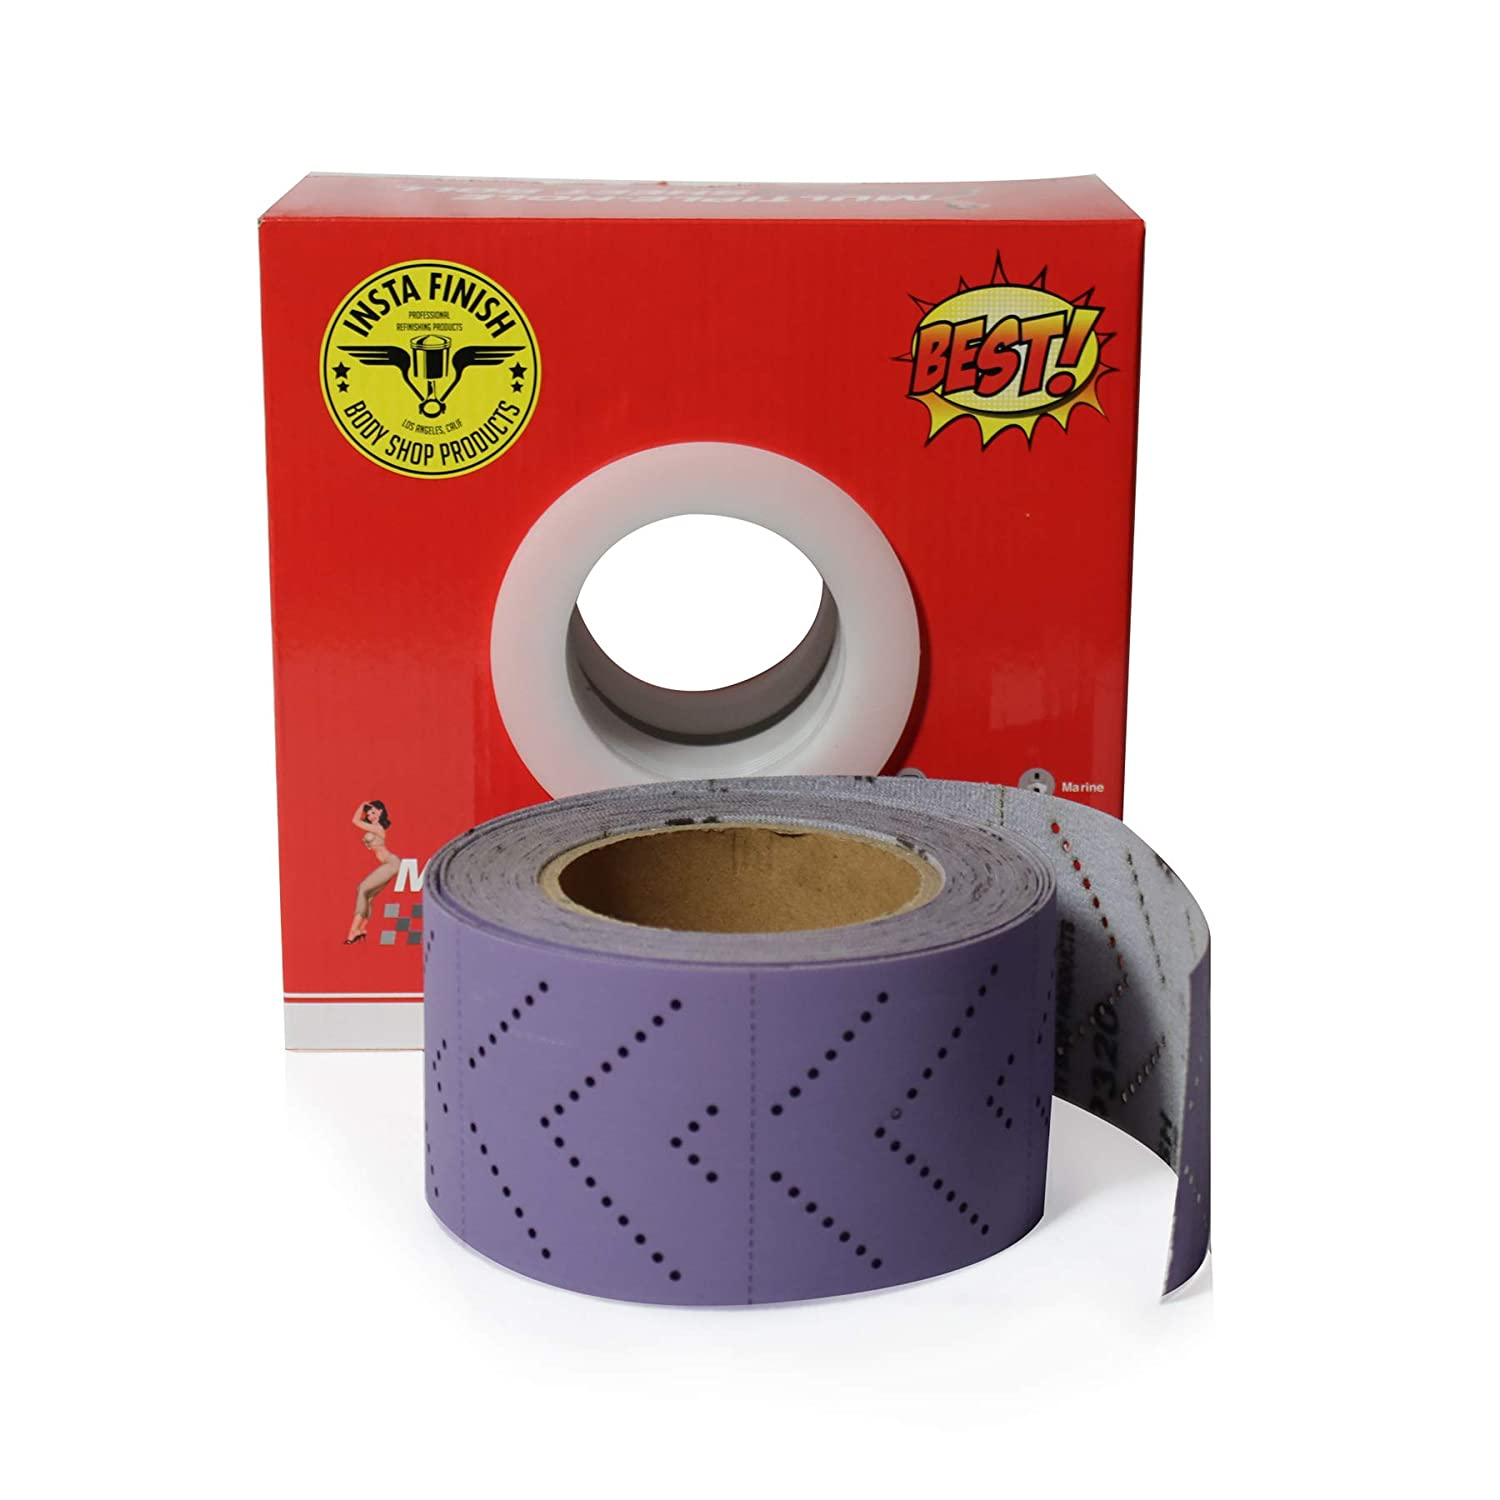 1 Roll Per Box Insta Finish Sand Paper Hook /& Loop Long Board Continuous roll 80 Grit